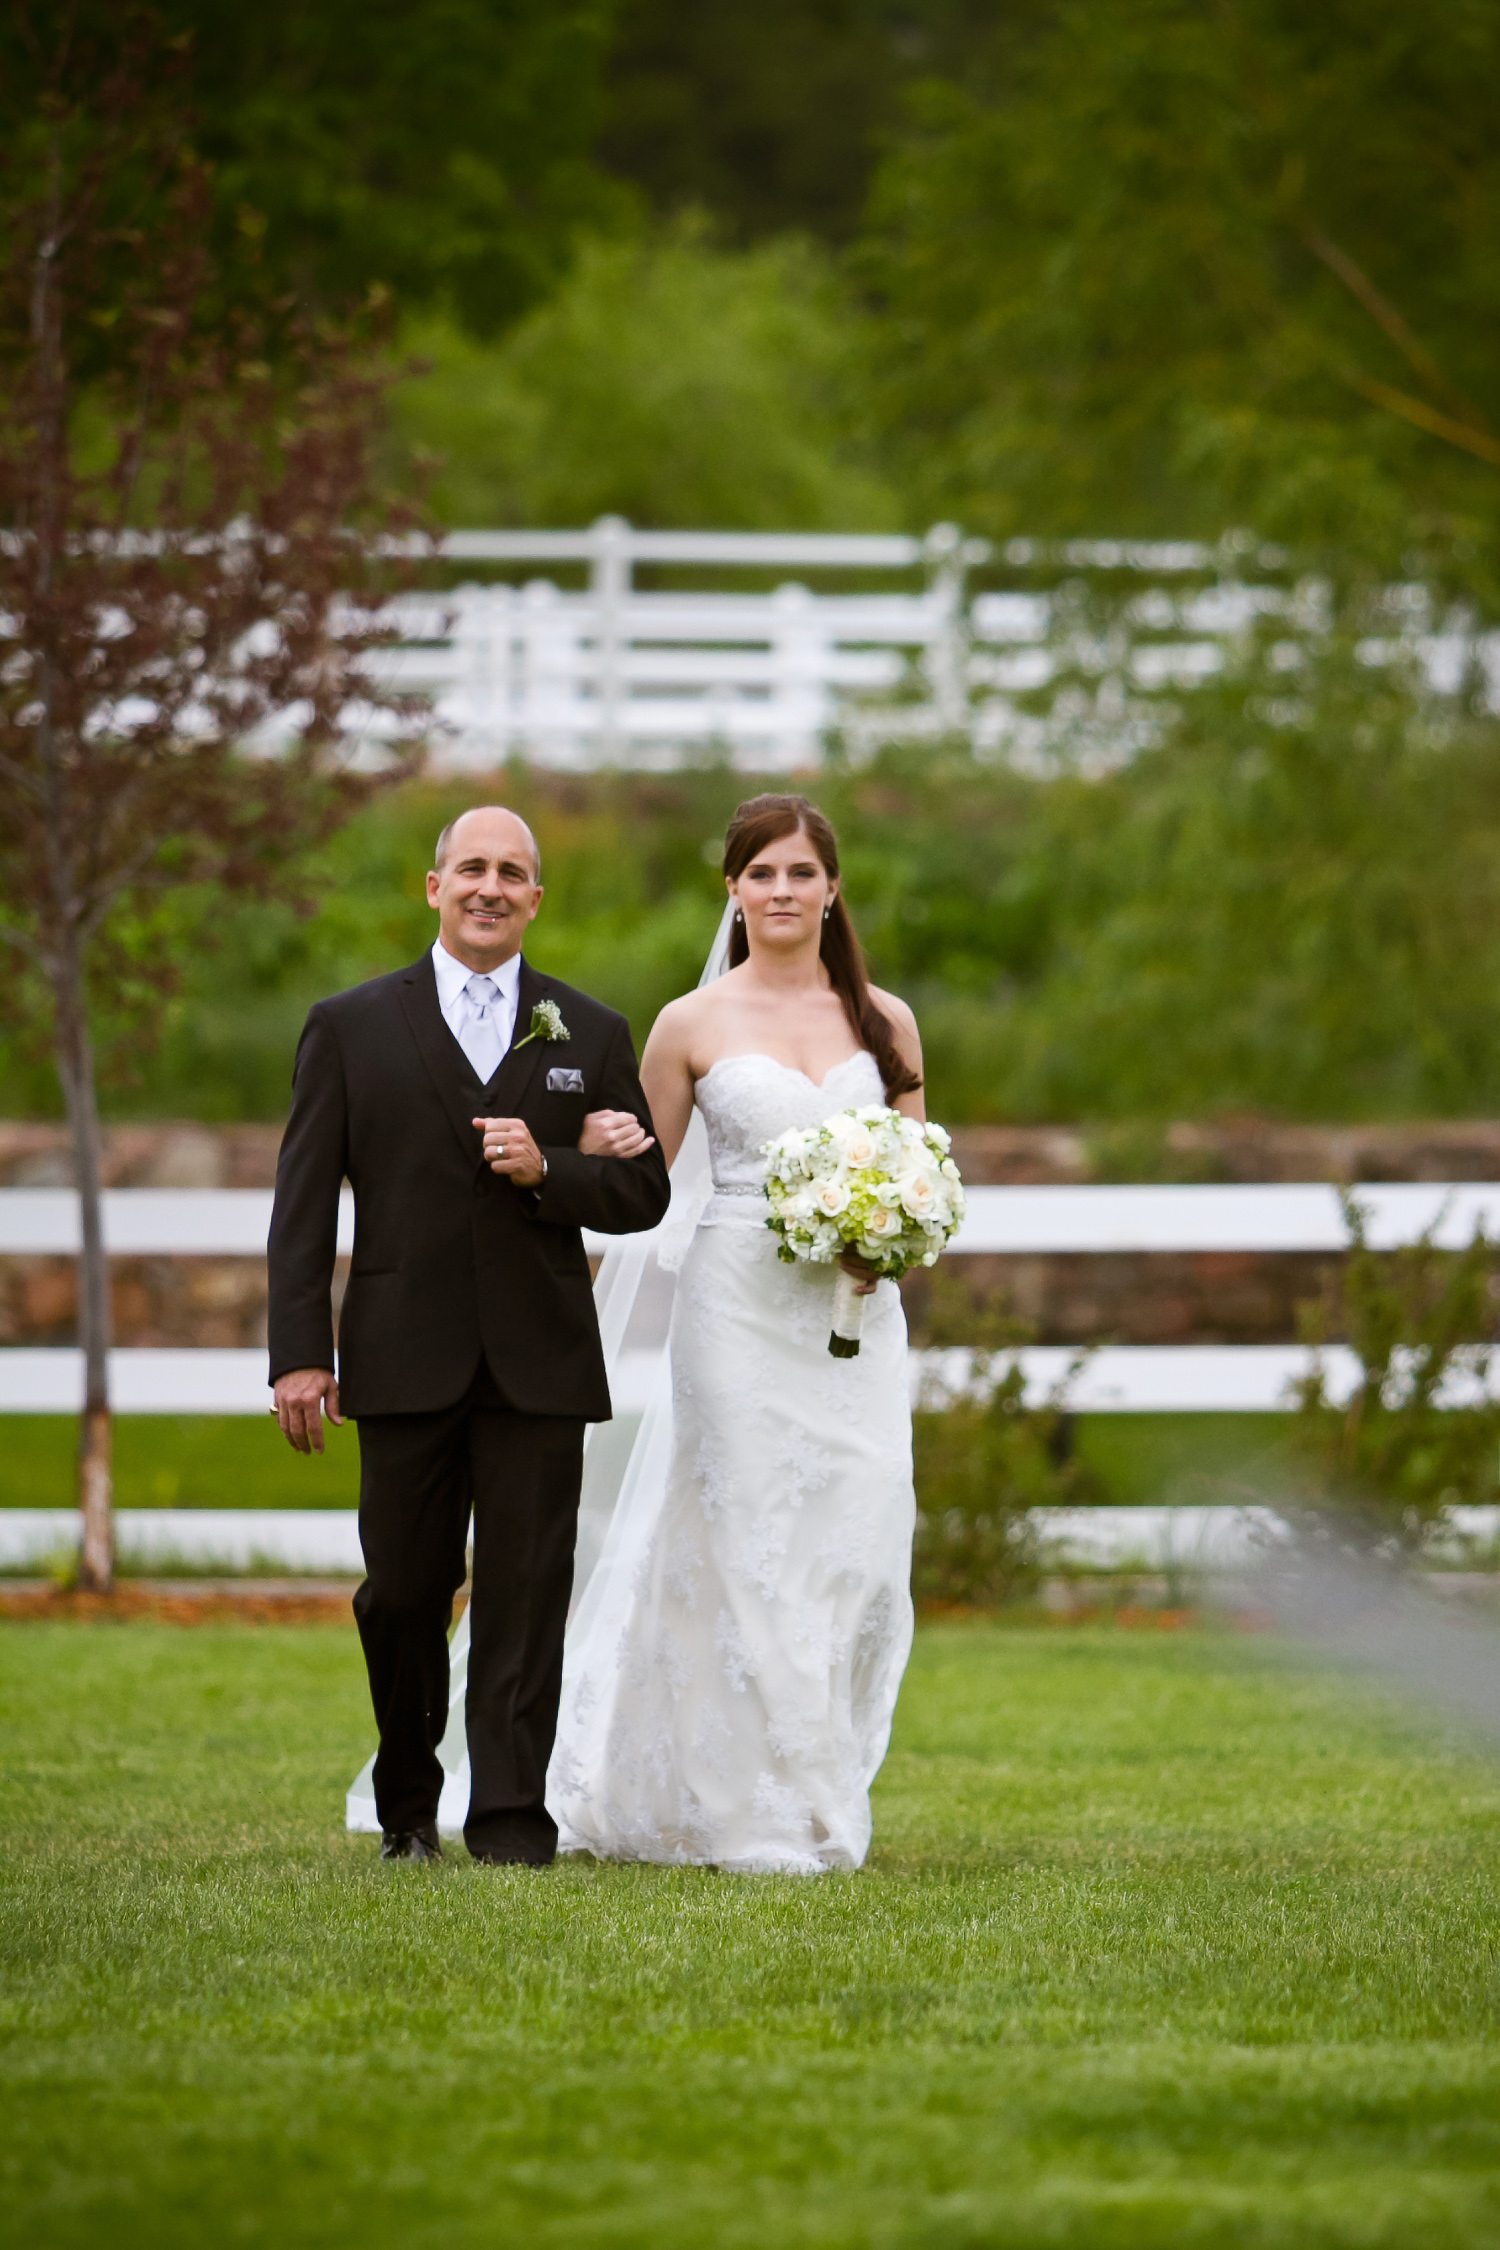 Crooked_Willow_Farms_Wedding_029.JPG